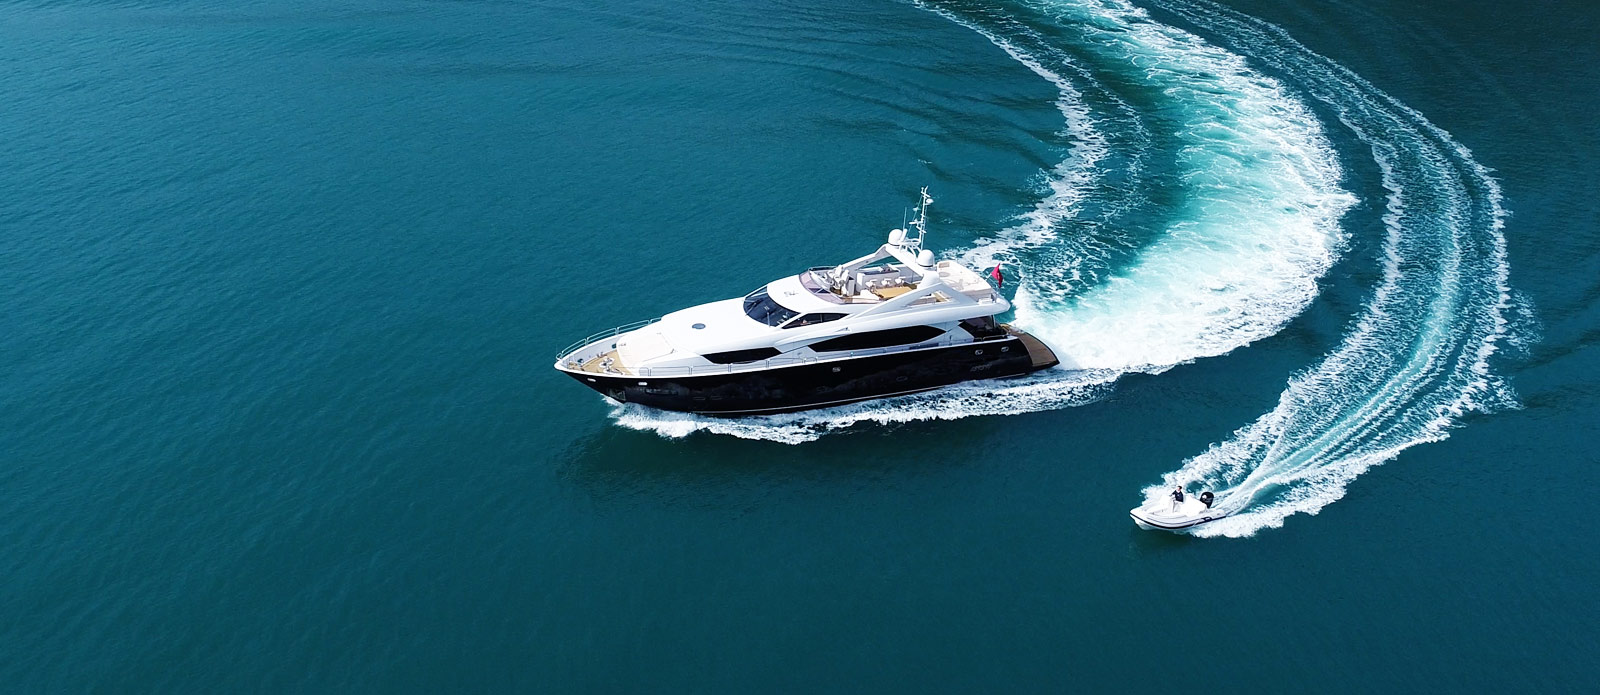 Sunseeker-30-Metre-Yacht-Coraysa-Cruising-with-Tender-Overhead